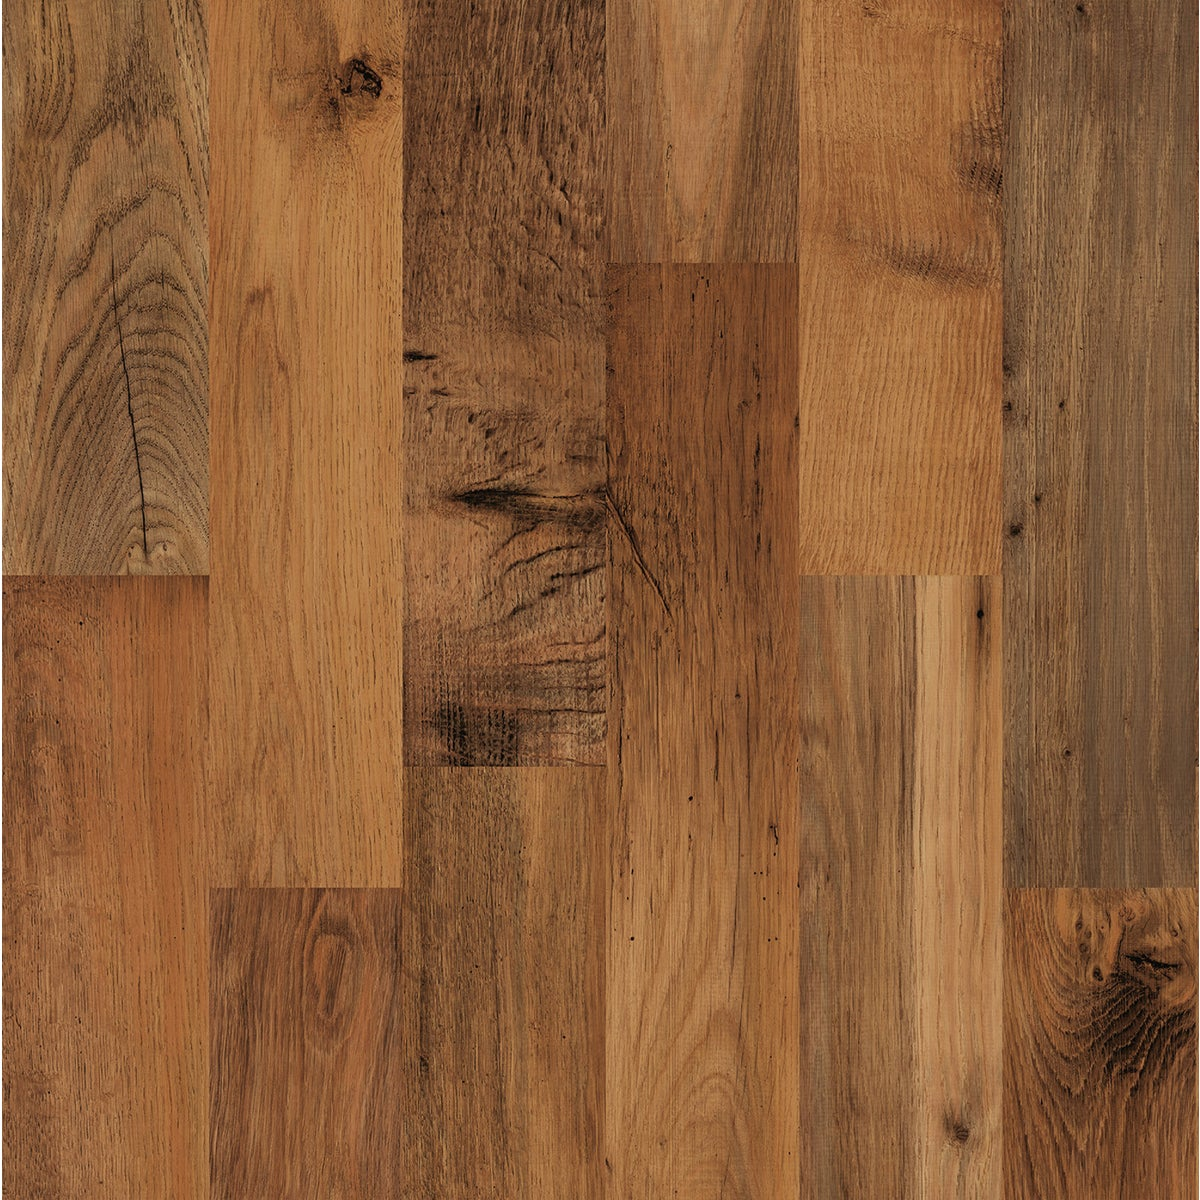 AVIGNON OAK RS LAM FLOOR - 431A by Balterio U S Inc